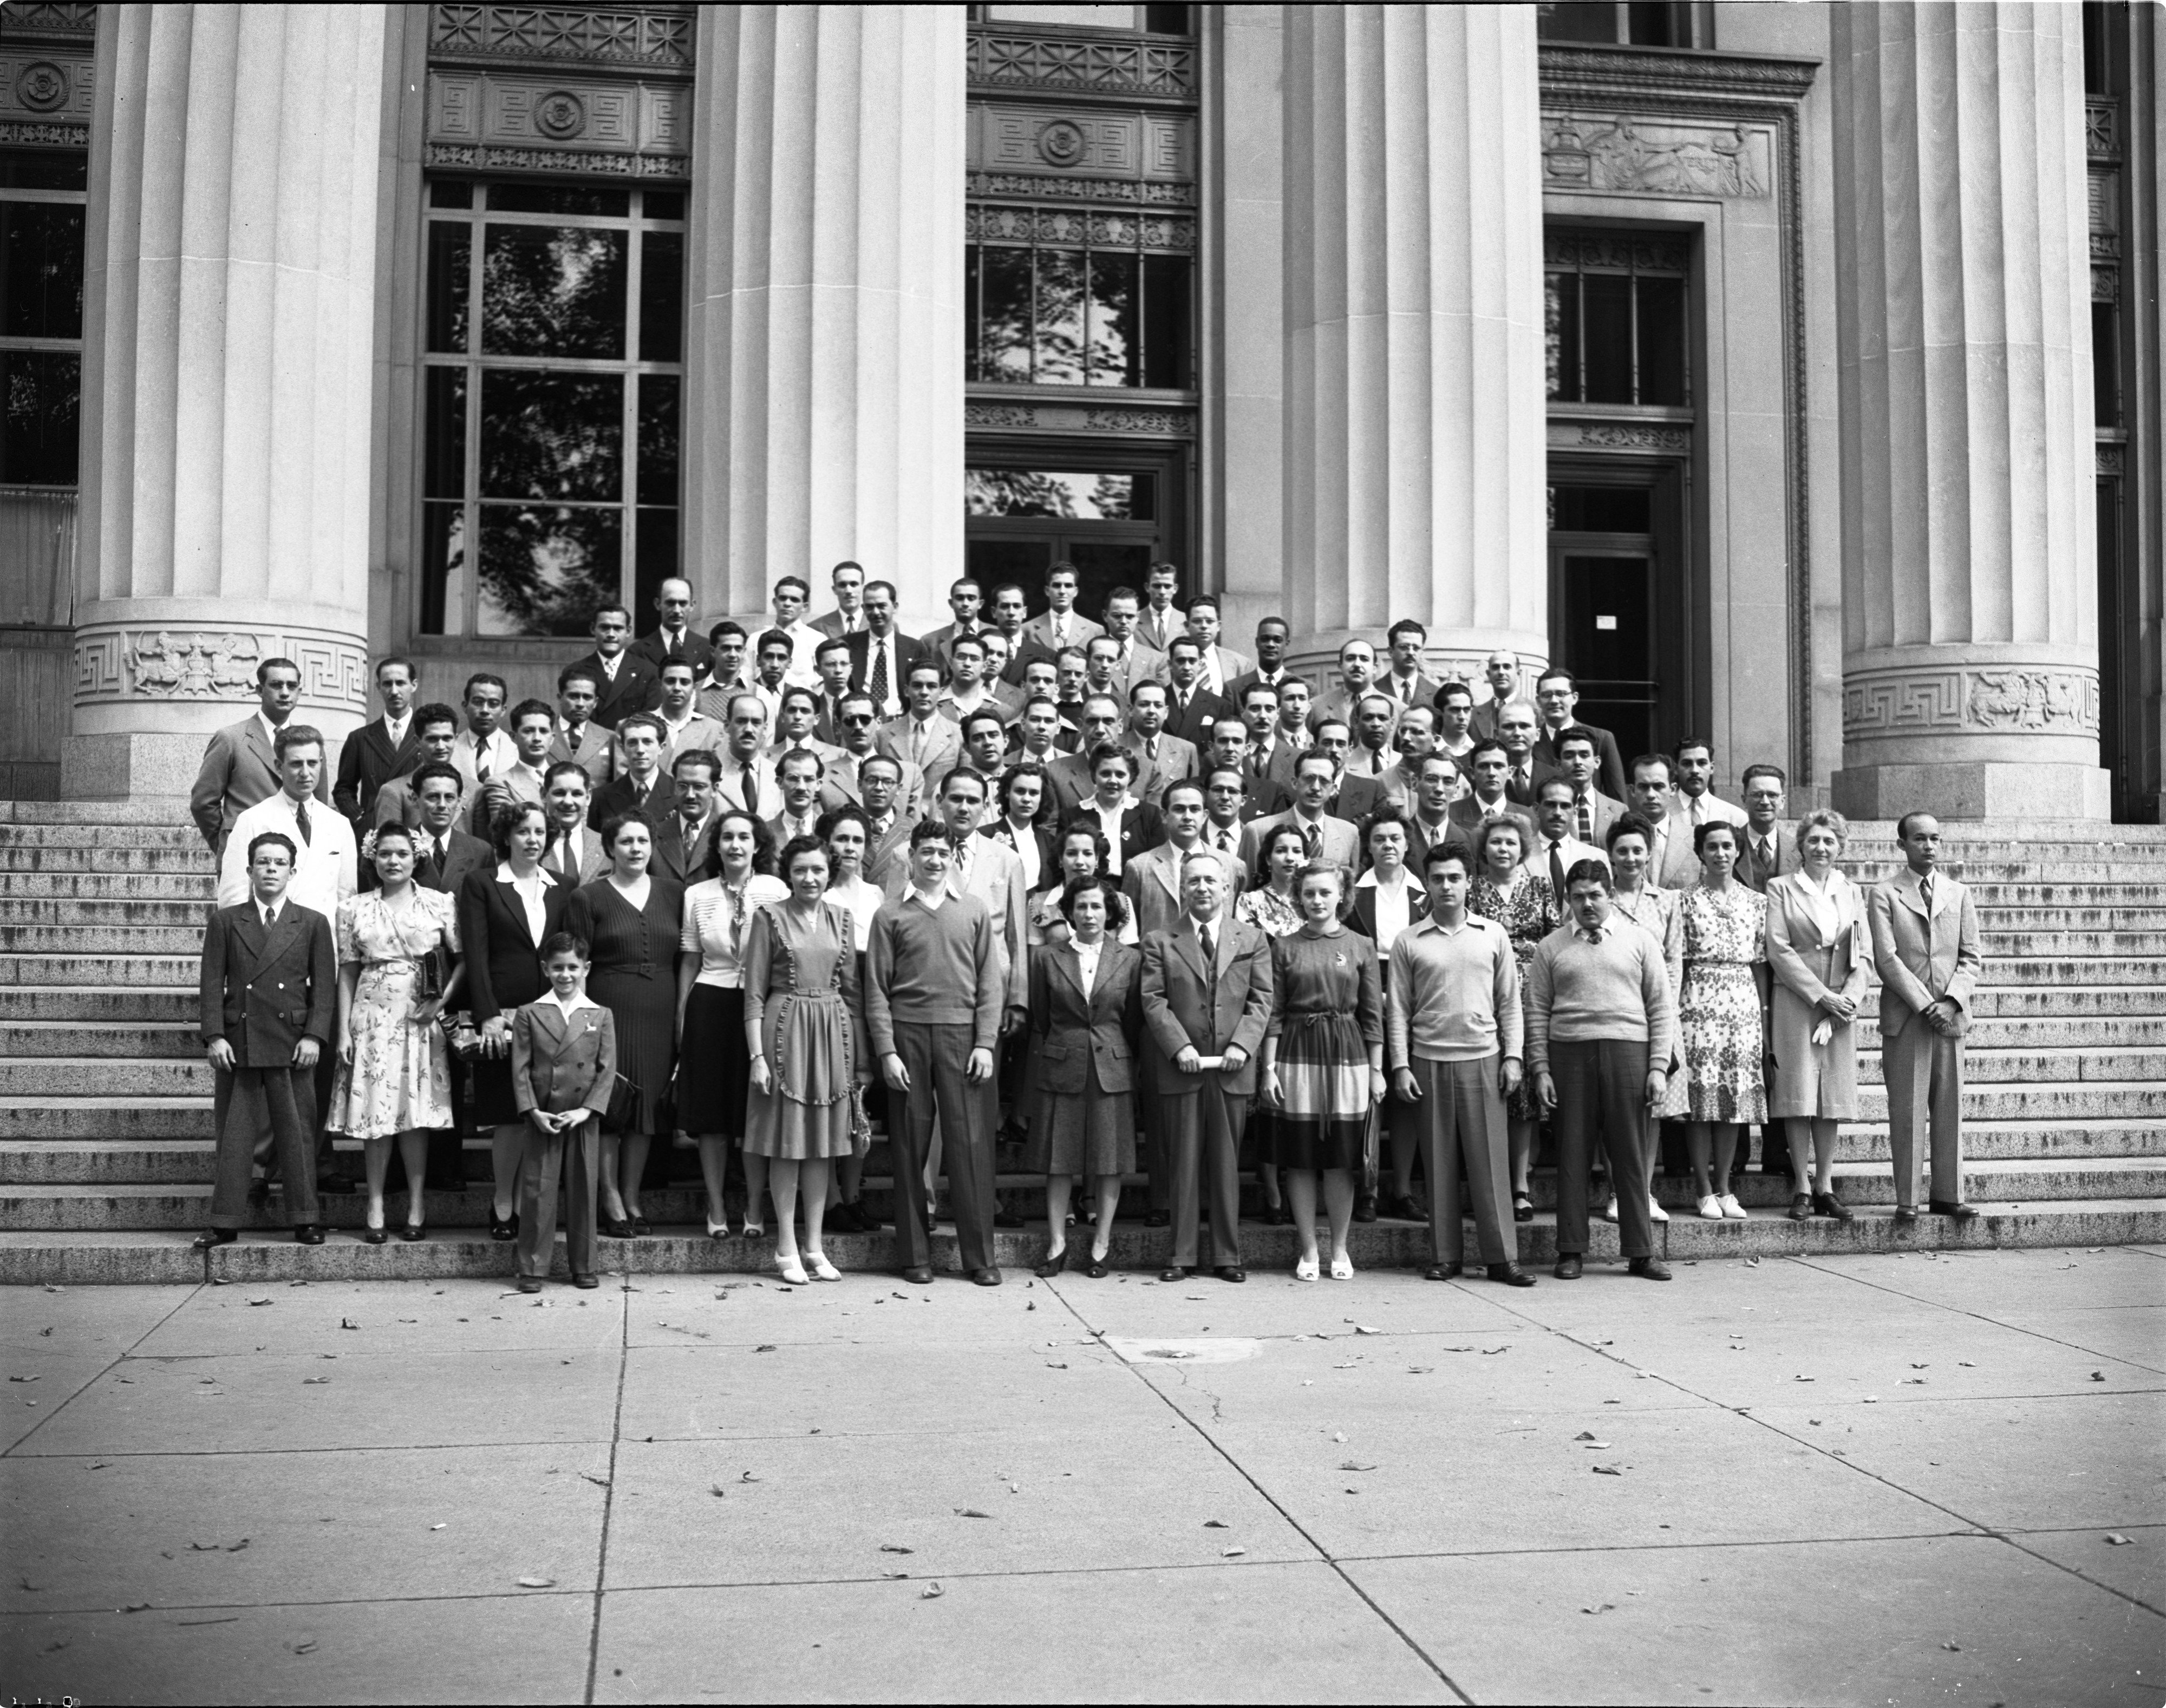 South American Visitors To U-M Pose On Steps Of Angell Hall, August 1944 image